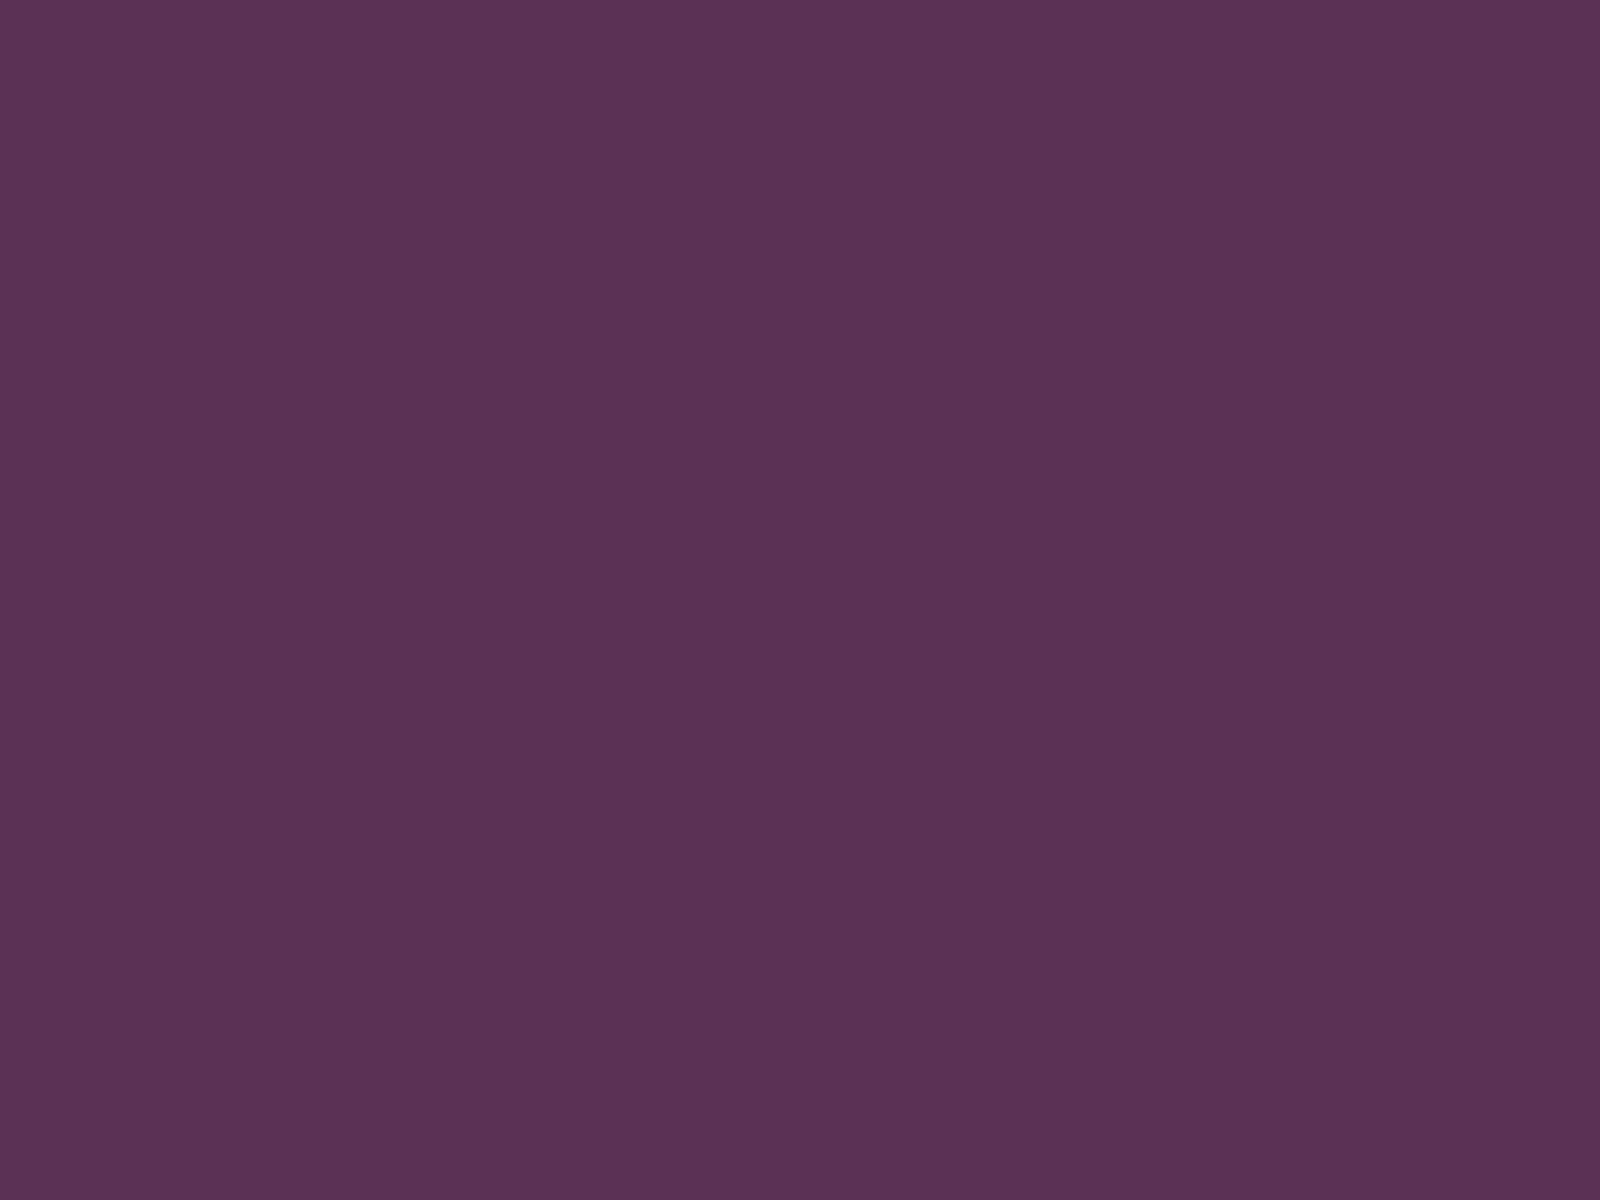 1600x1200 Japanese Violet Solid Color Background